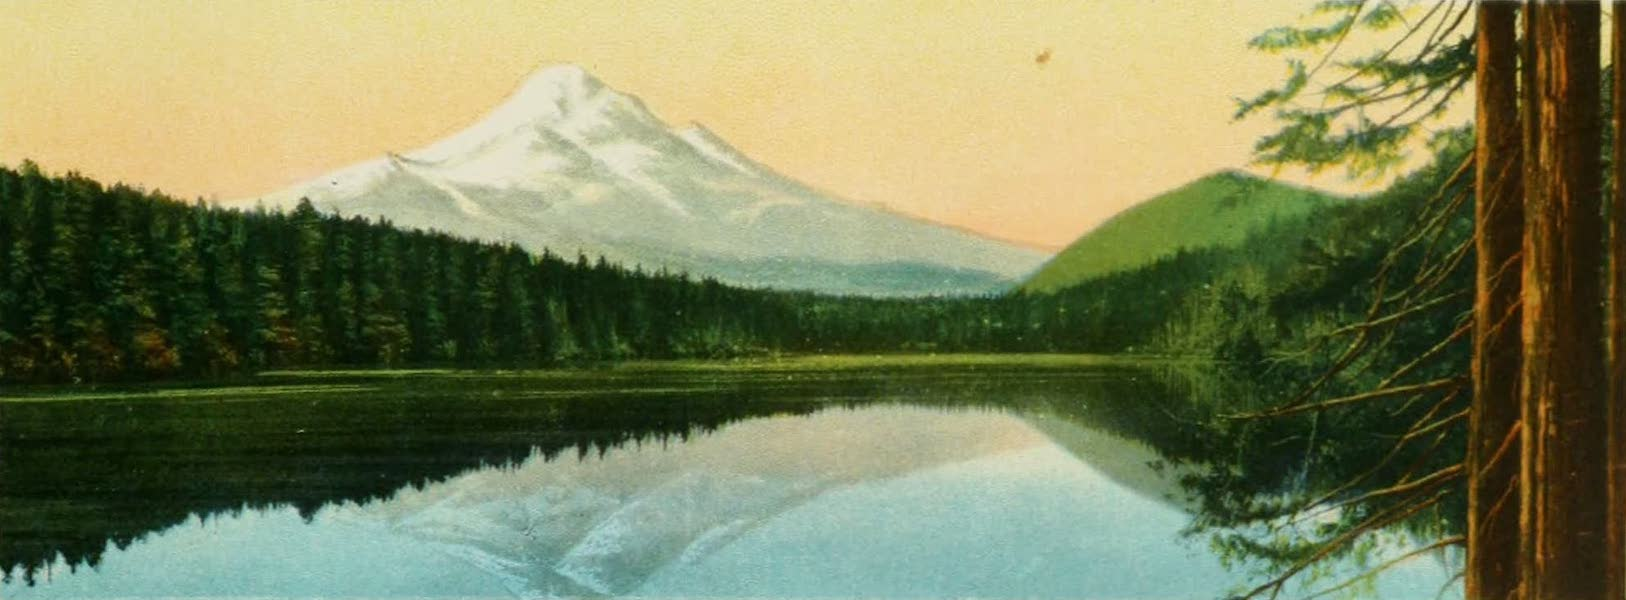 Oregon's Famous Columbia River Highway - Reflection of Mt. Hood in Lost Lake, Oregon (1920)